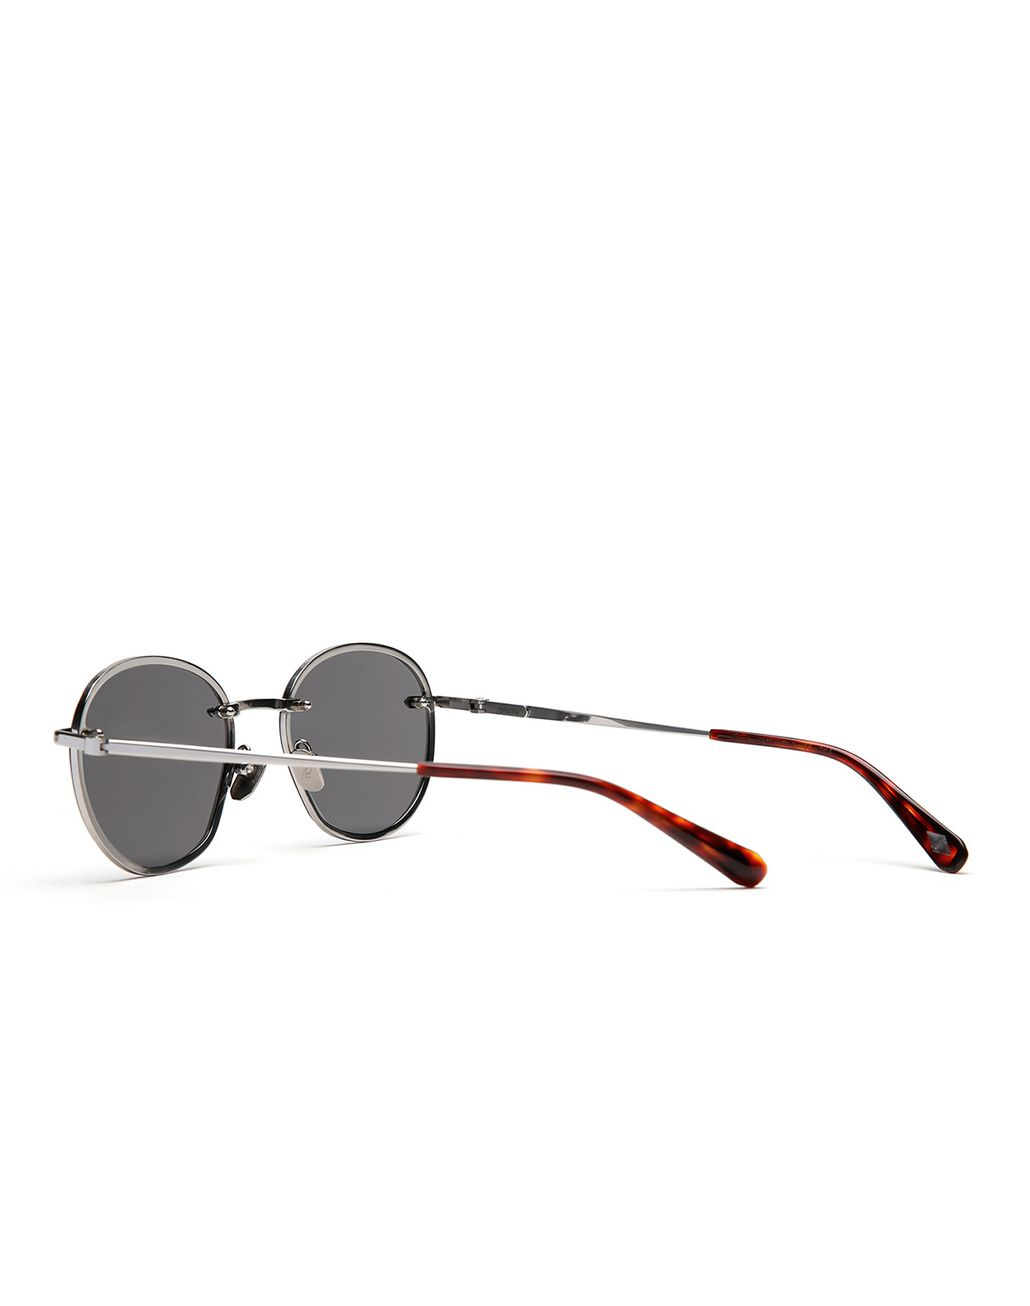 BRIONI Silver Rounded Titanium Sunglasses with Grey Lenses  Sunglasses [*** pickupInStoreShippingNotGuaranteed_info ***] d